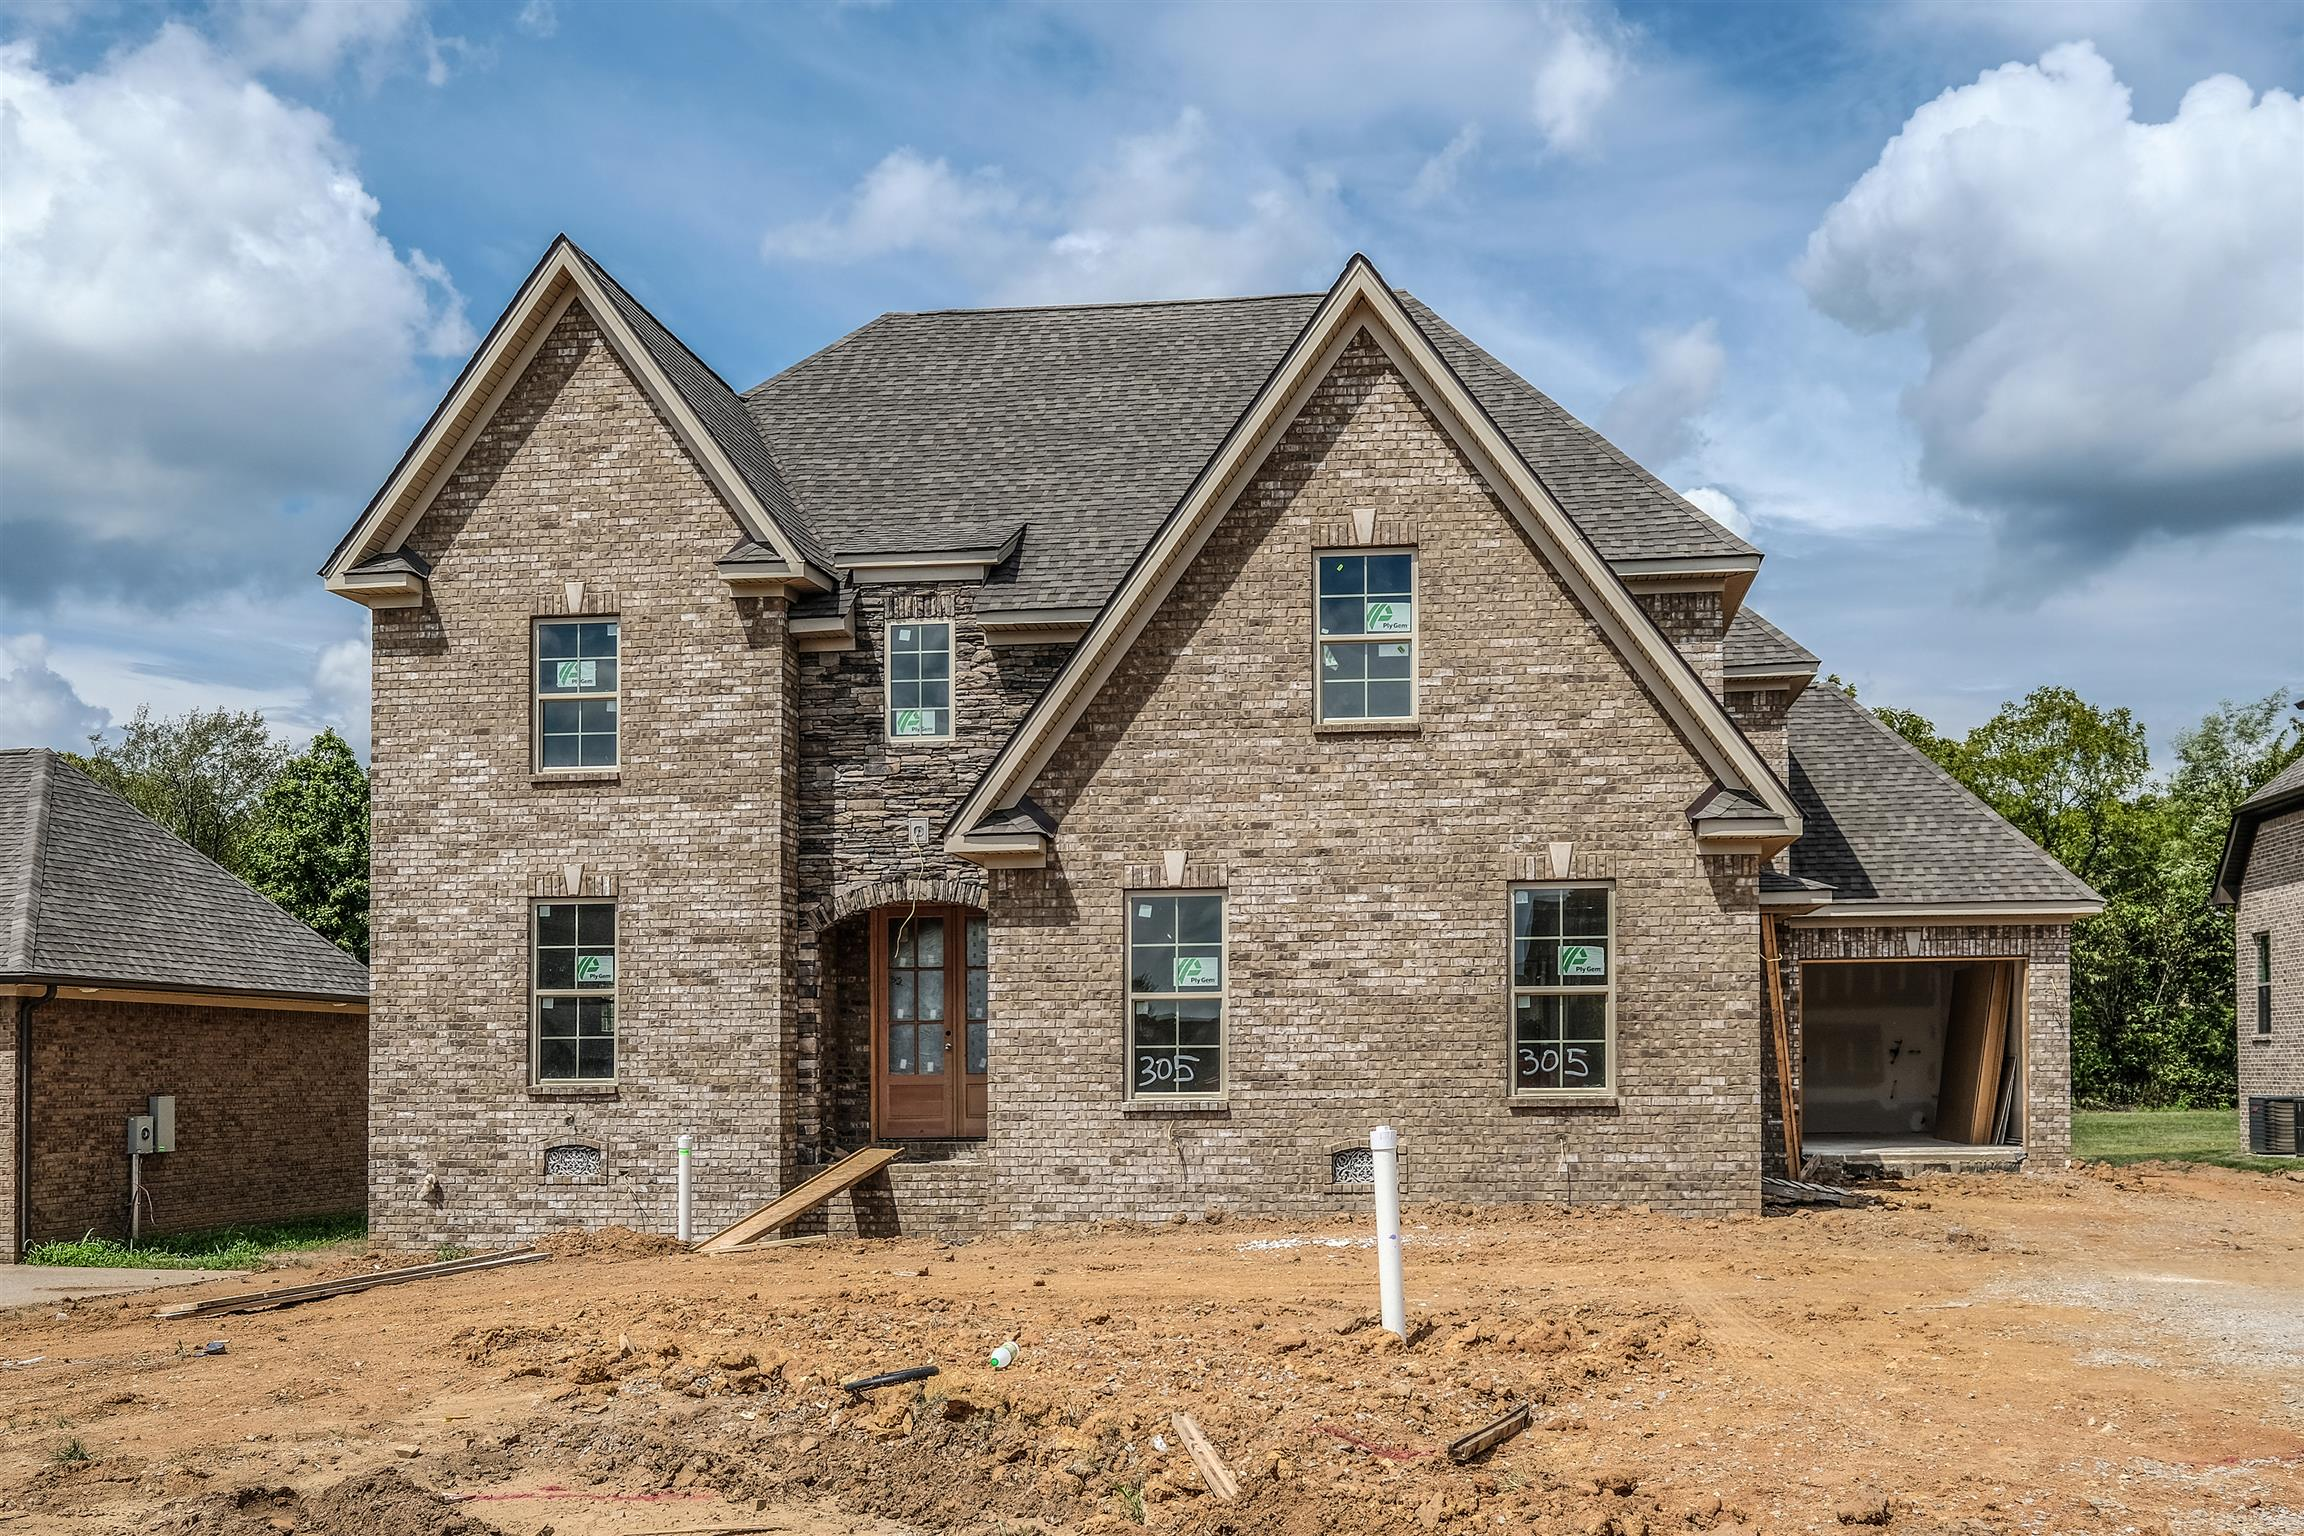 1011 Gadwall Ln (Lot 305), Spring Hill, TN 37174